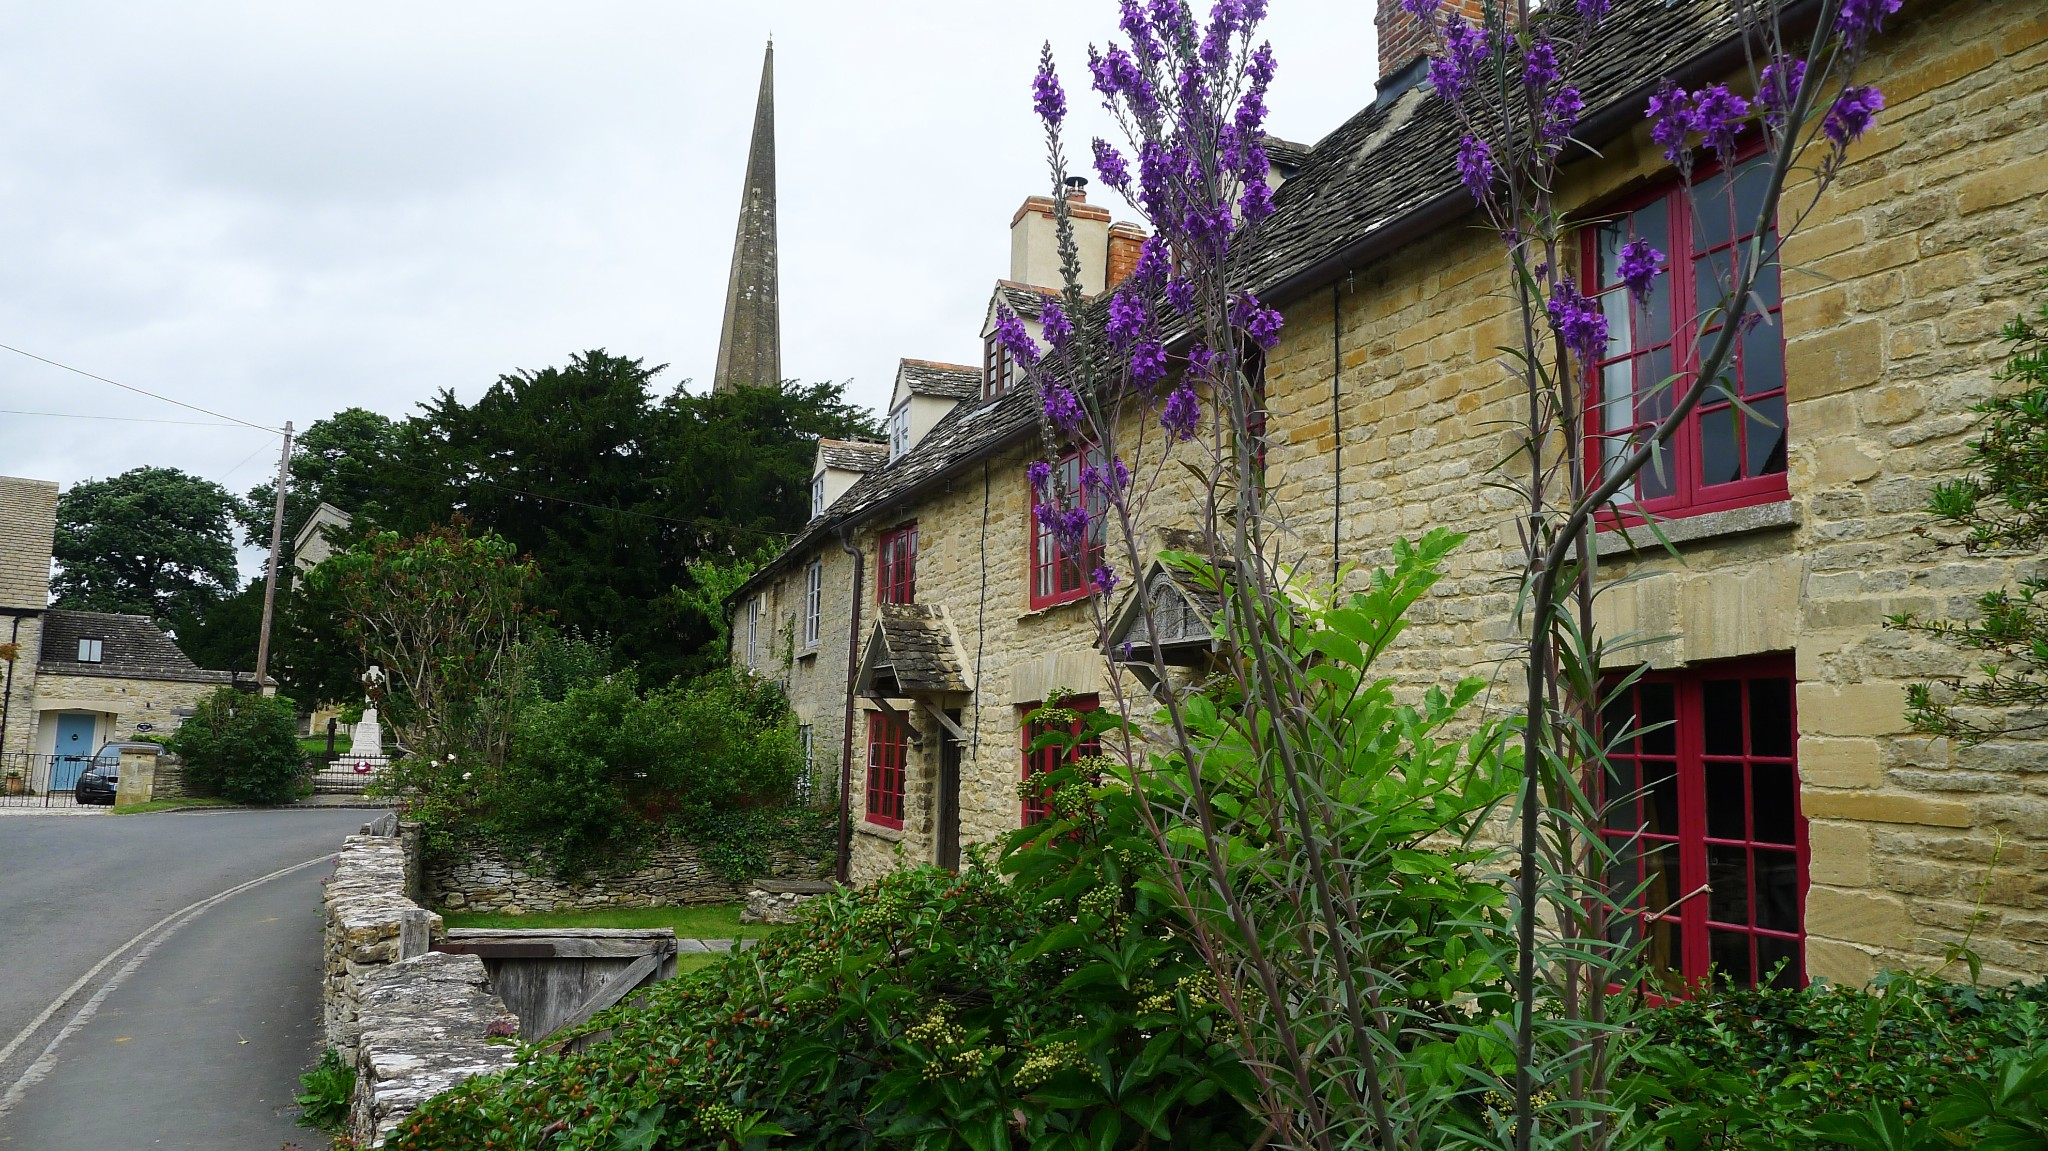 Why Did Busloads Of Asian Tourists Suddenly Arrive In This English Village?